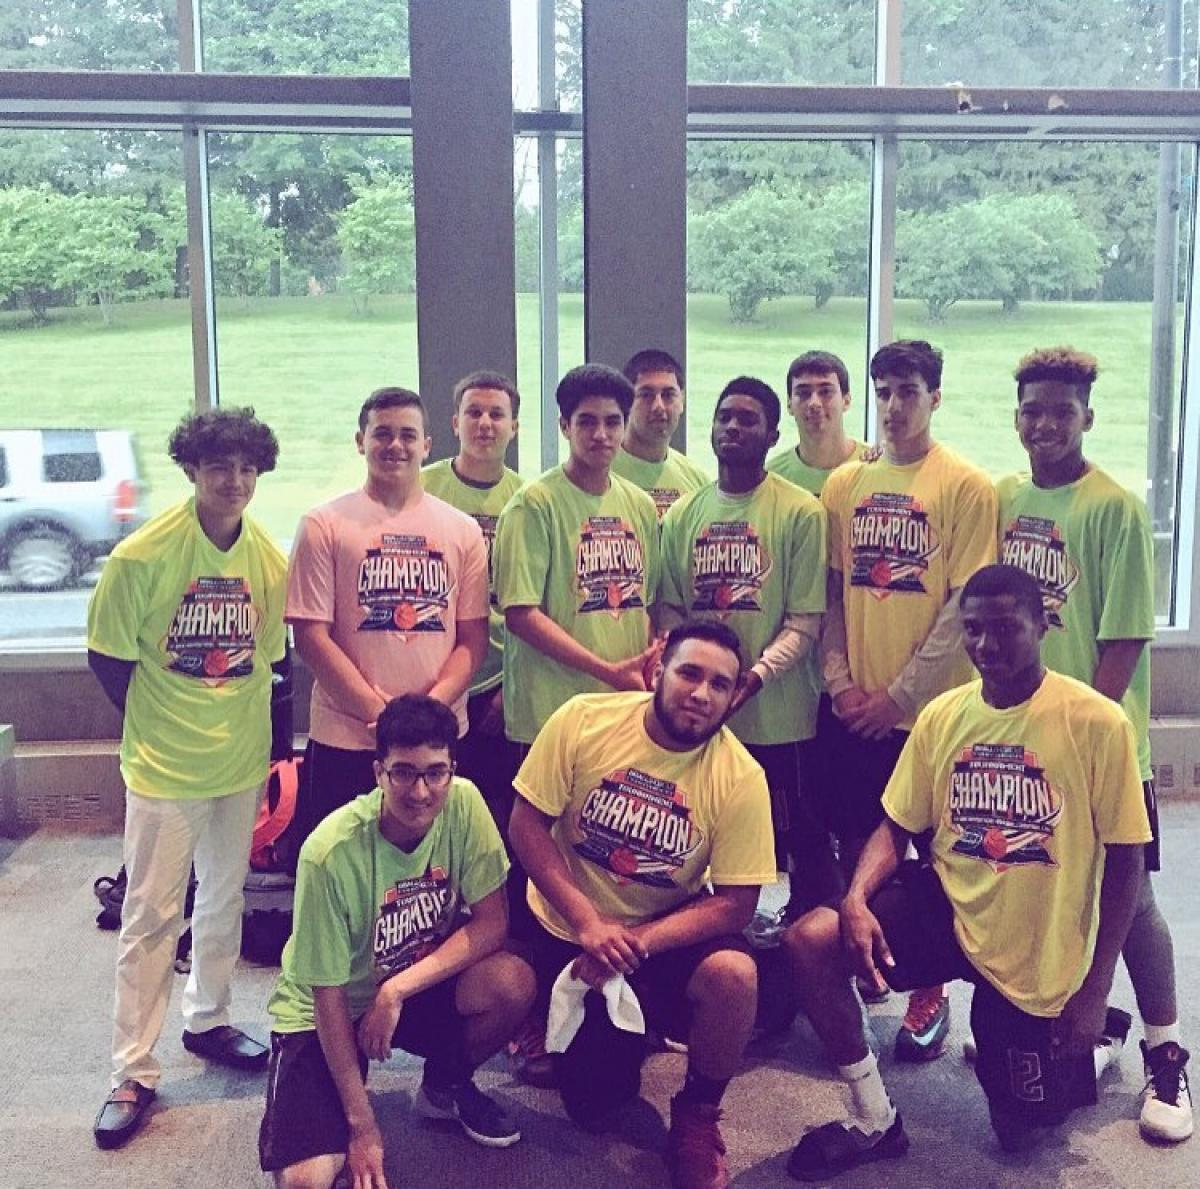 2016 BBall Shootout Champions at Ramapo College